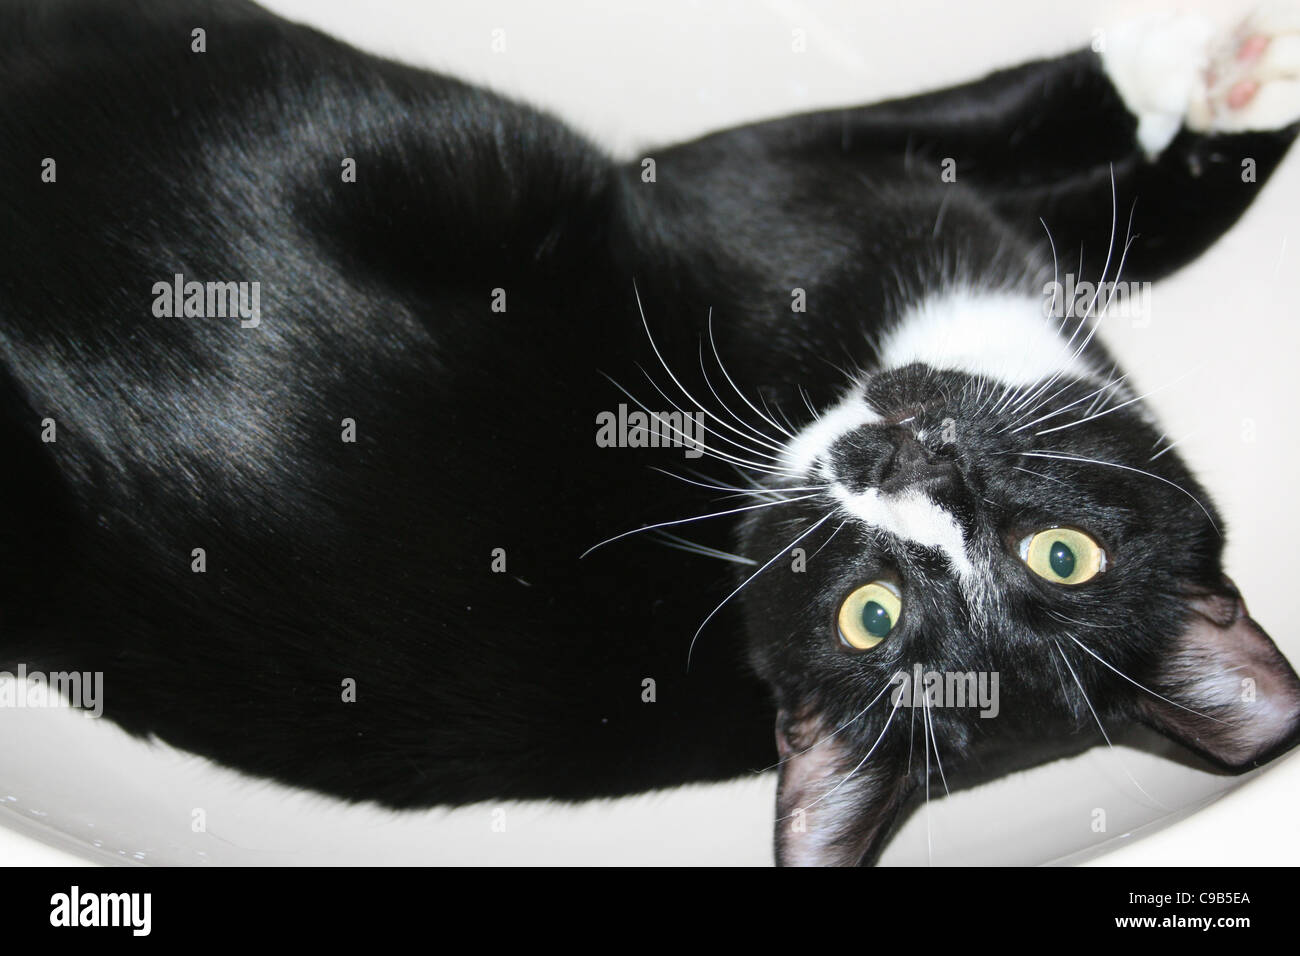 Black male cat with white face markings laying in bathroom wash hand basin looking up side down. - Stock Image